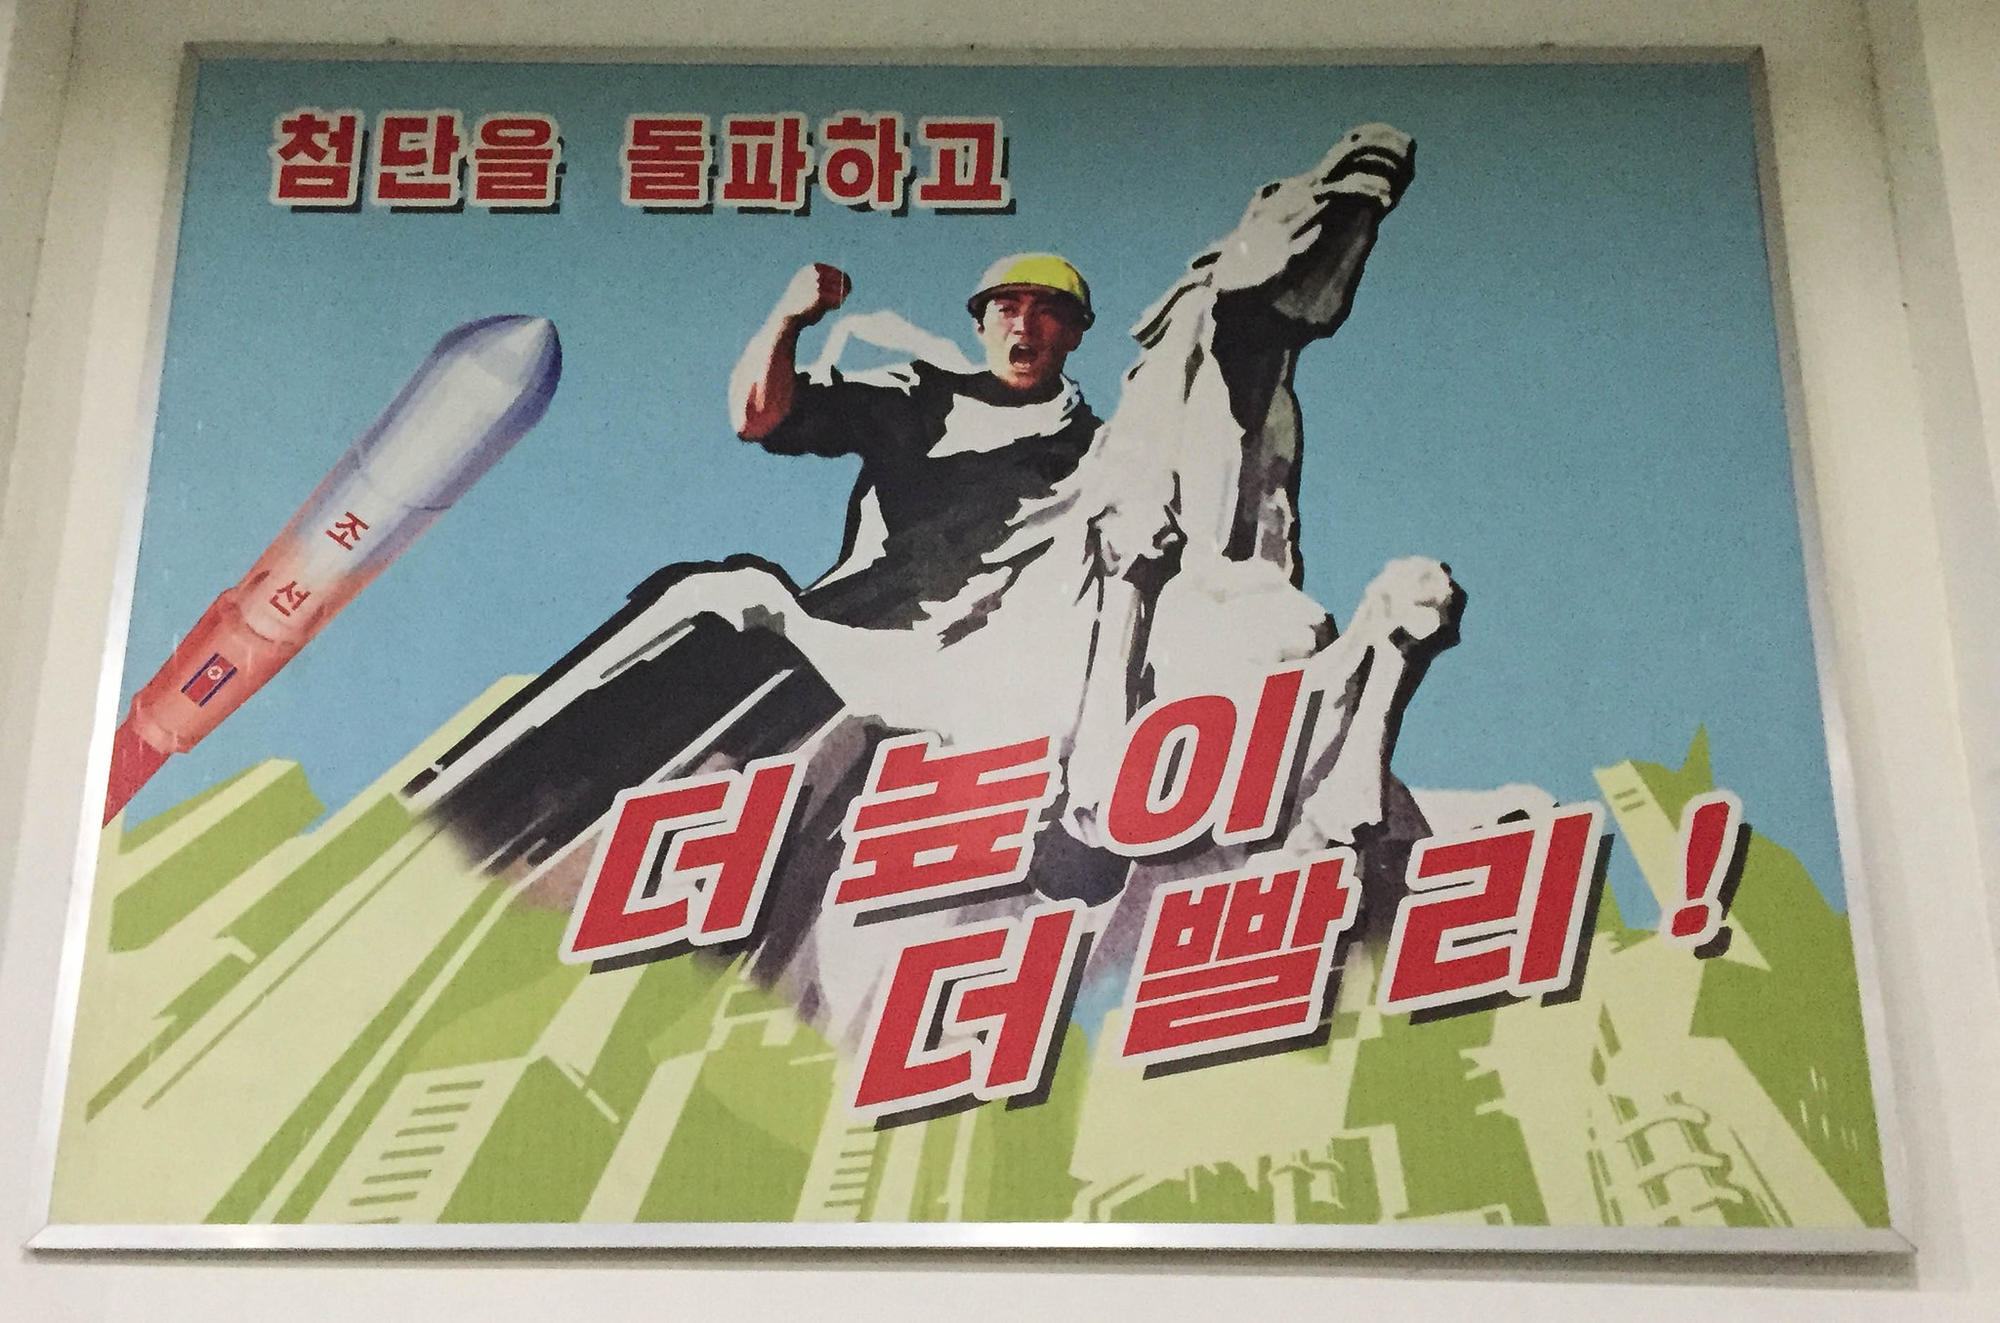 "A piece of propaganda art inside the factory. The plant had numerous large posters exhorting workers to follow the party and work hard for the country. ""Go Higher, Go Faster!"" it says."